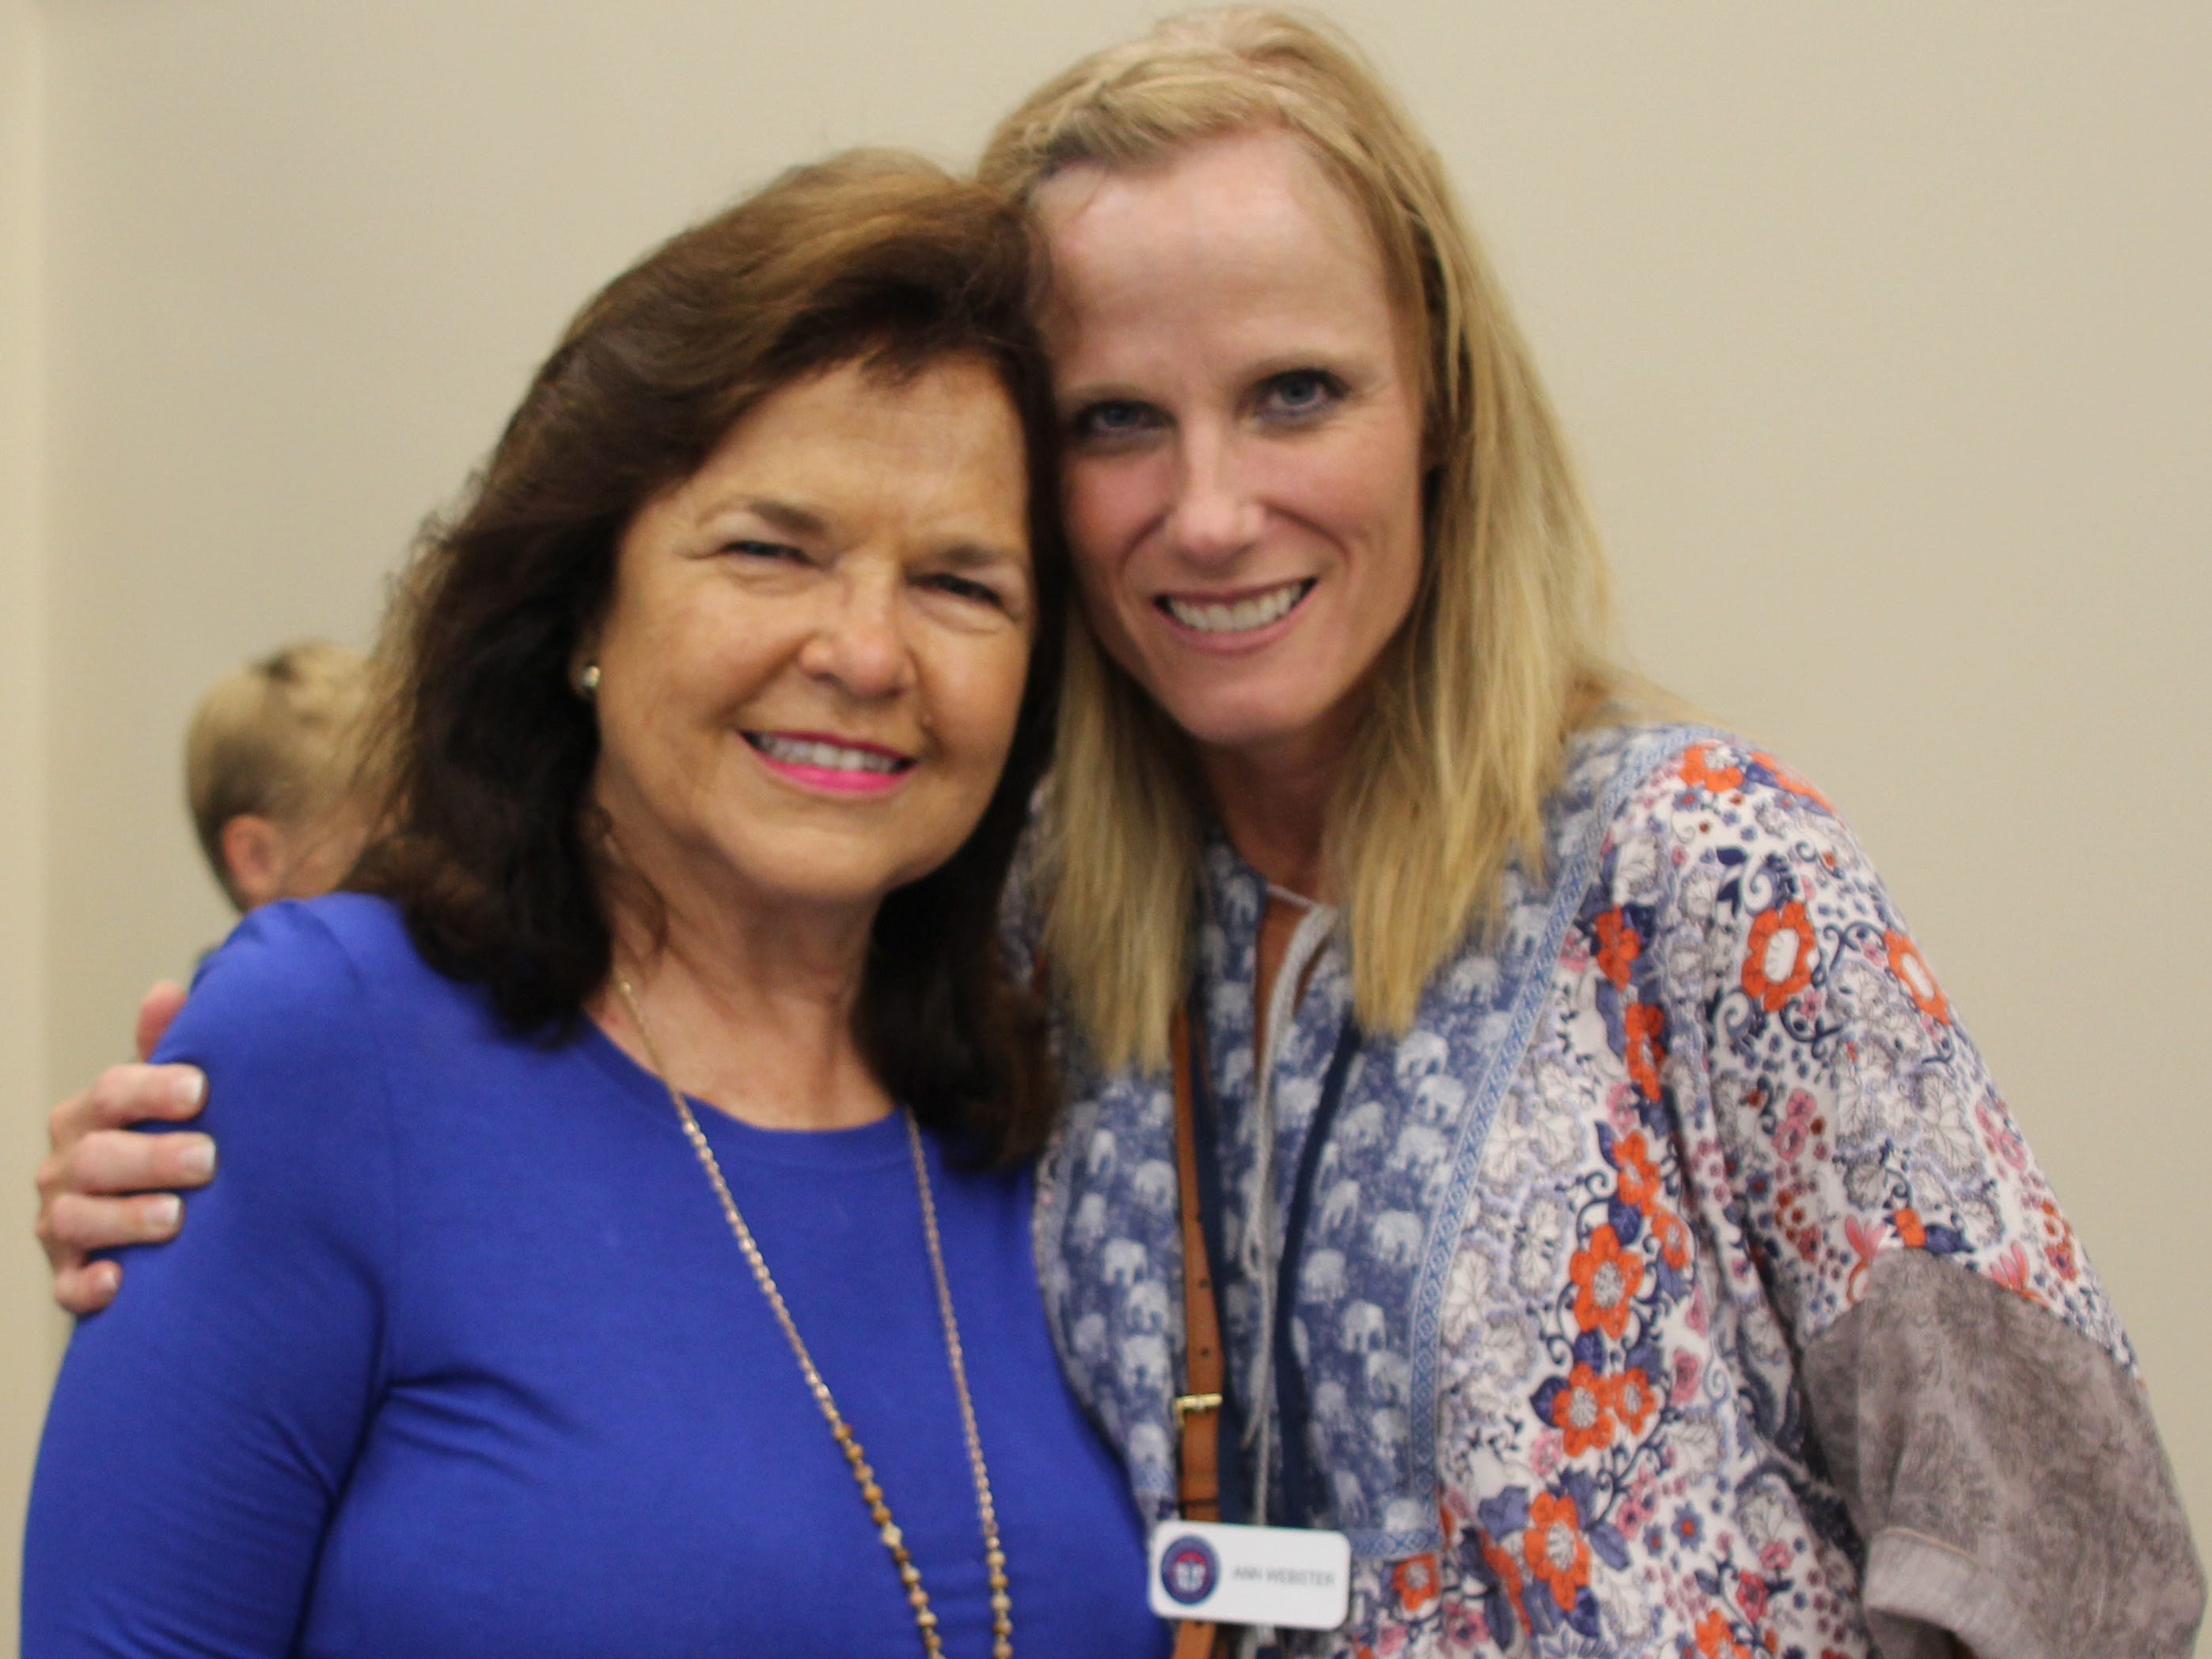 Madison Alderman and former MRA Principal Pat Peeler and faculty member Ann Webster joined the excitement of the day.